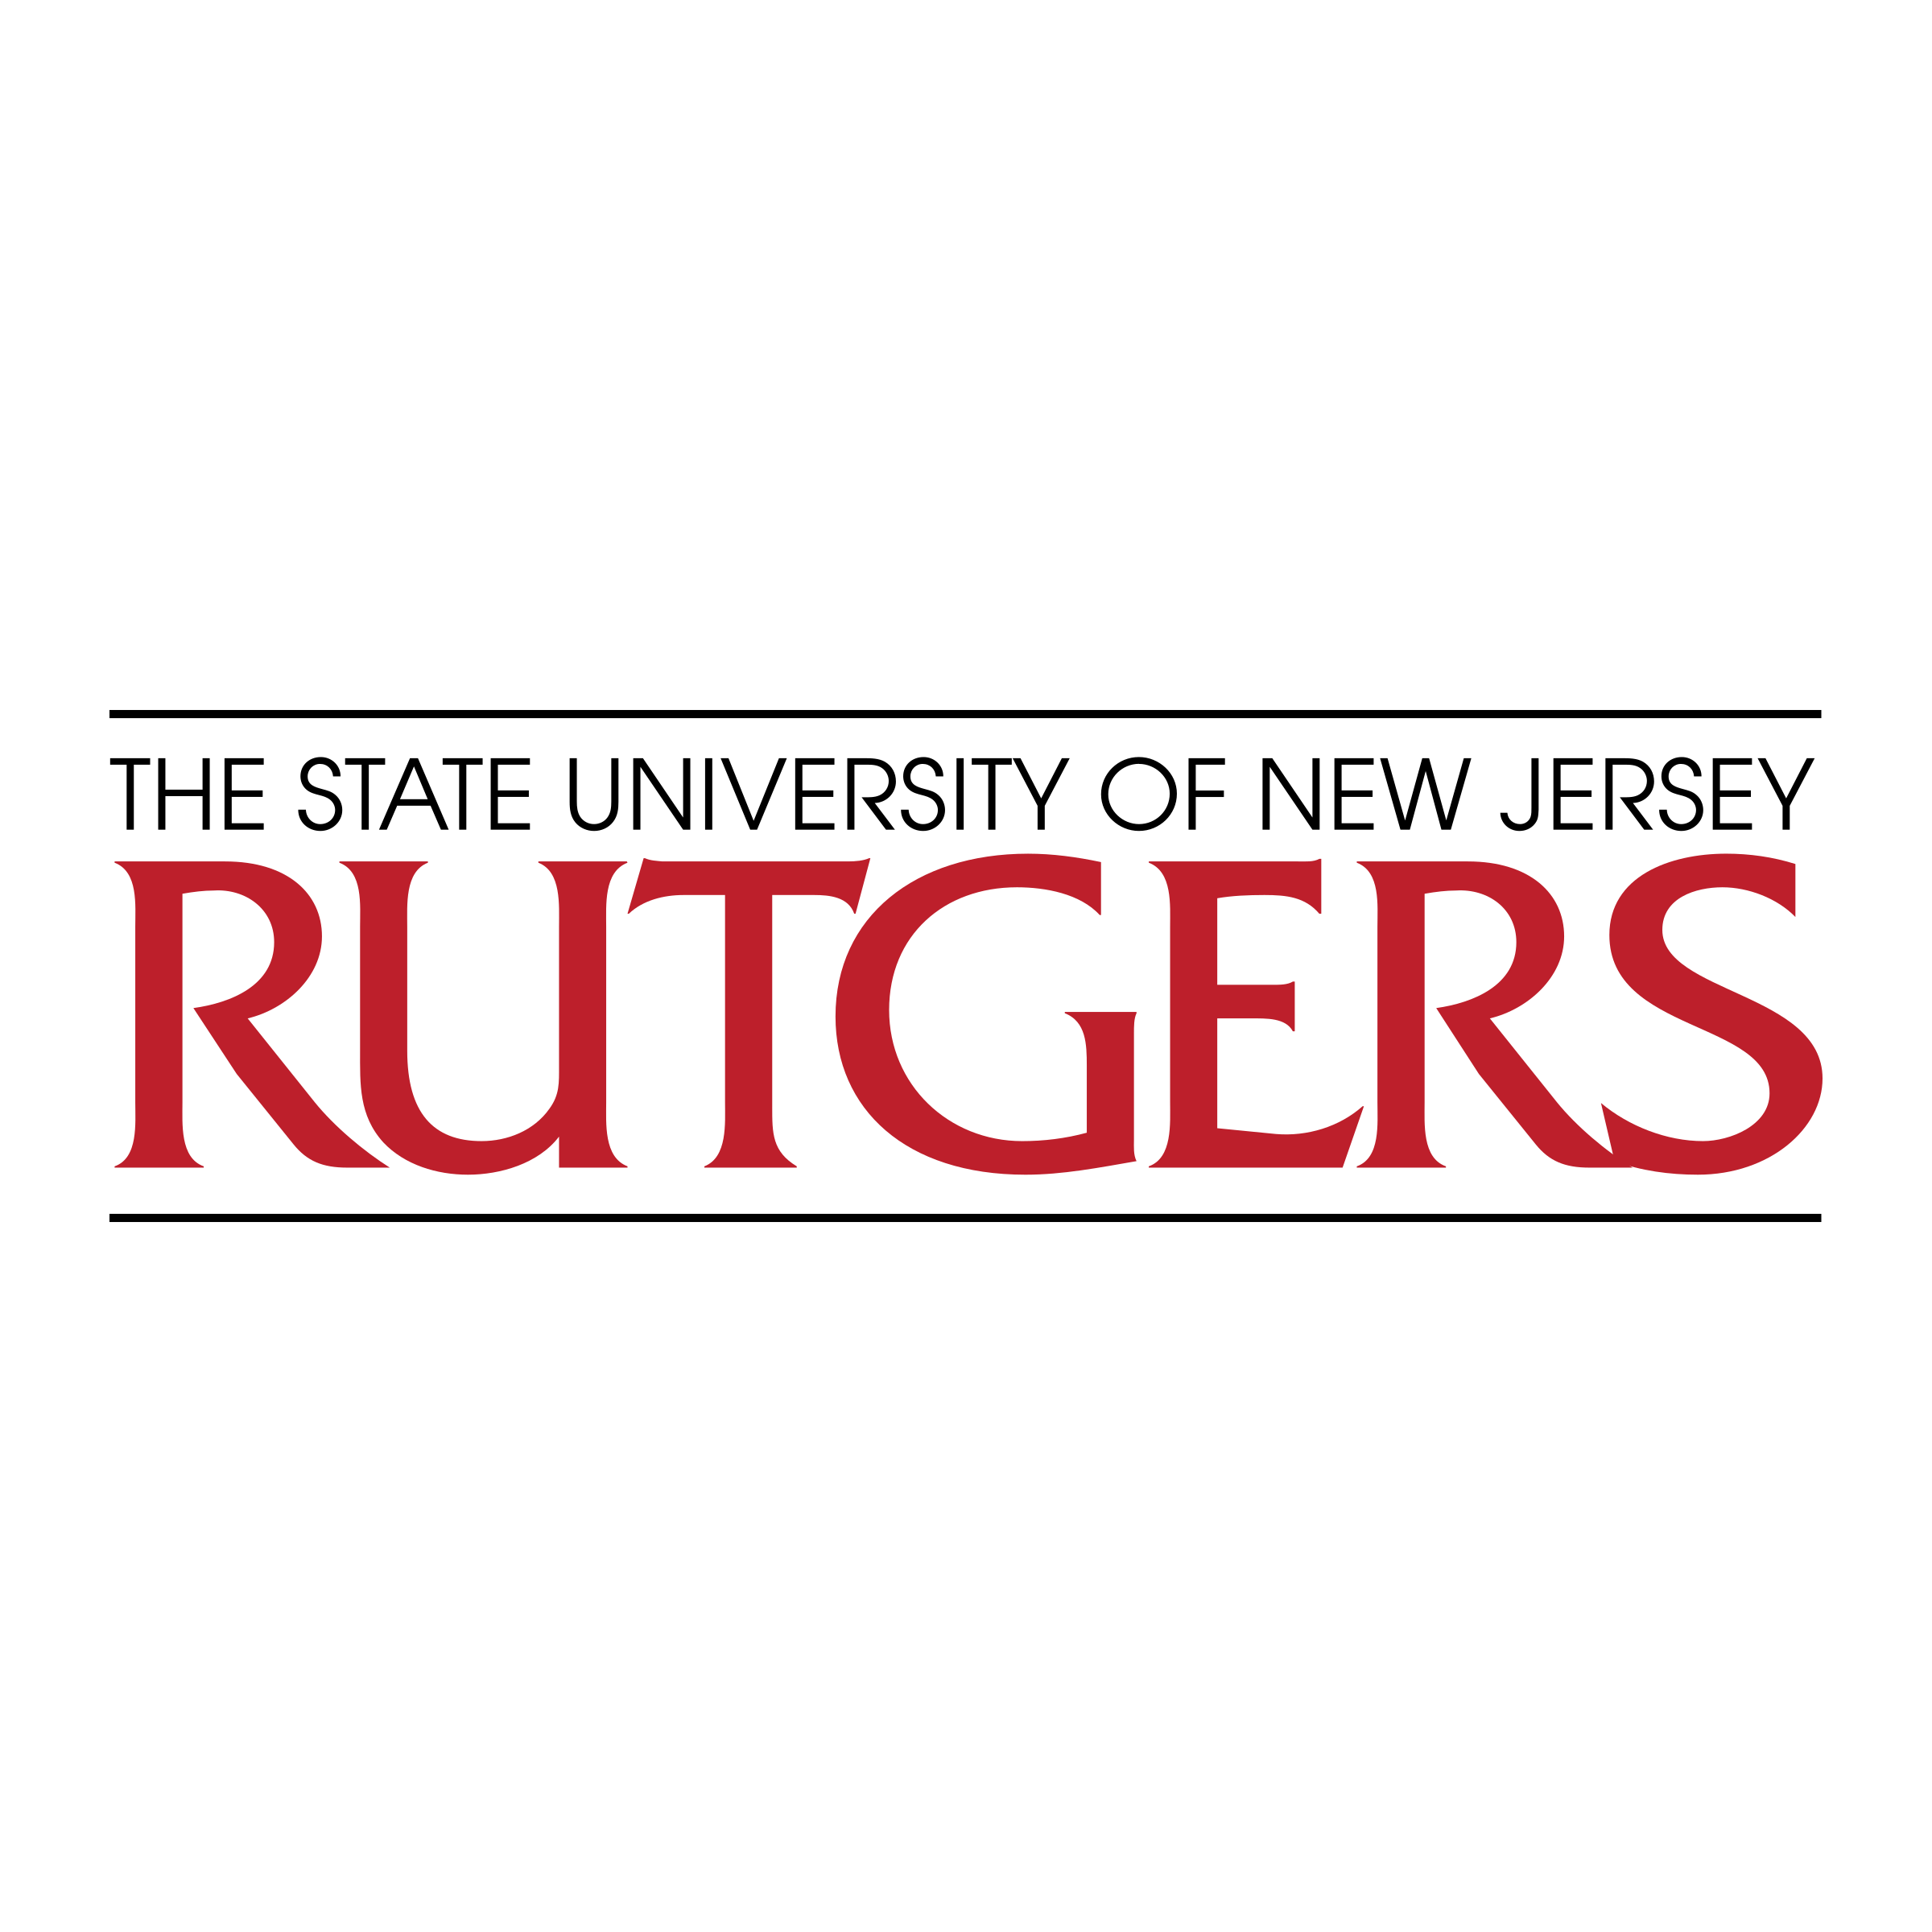 rutgers-university-logo-png-transparent.png